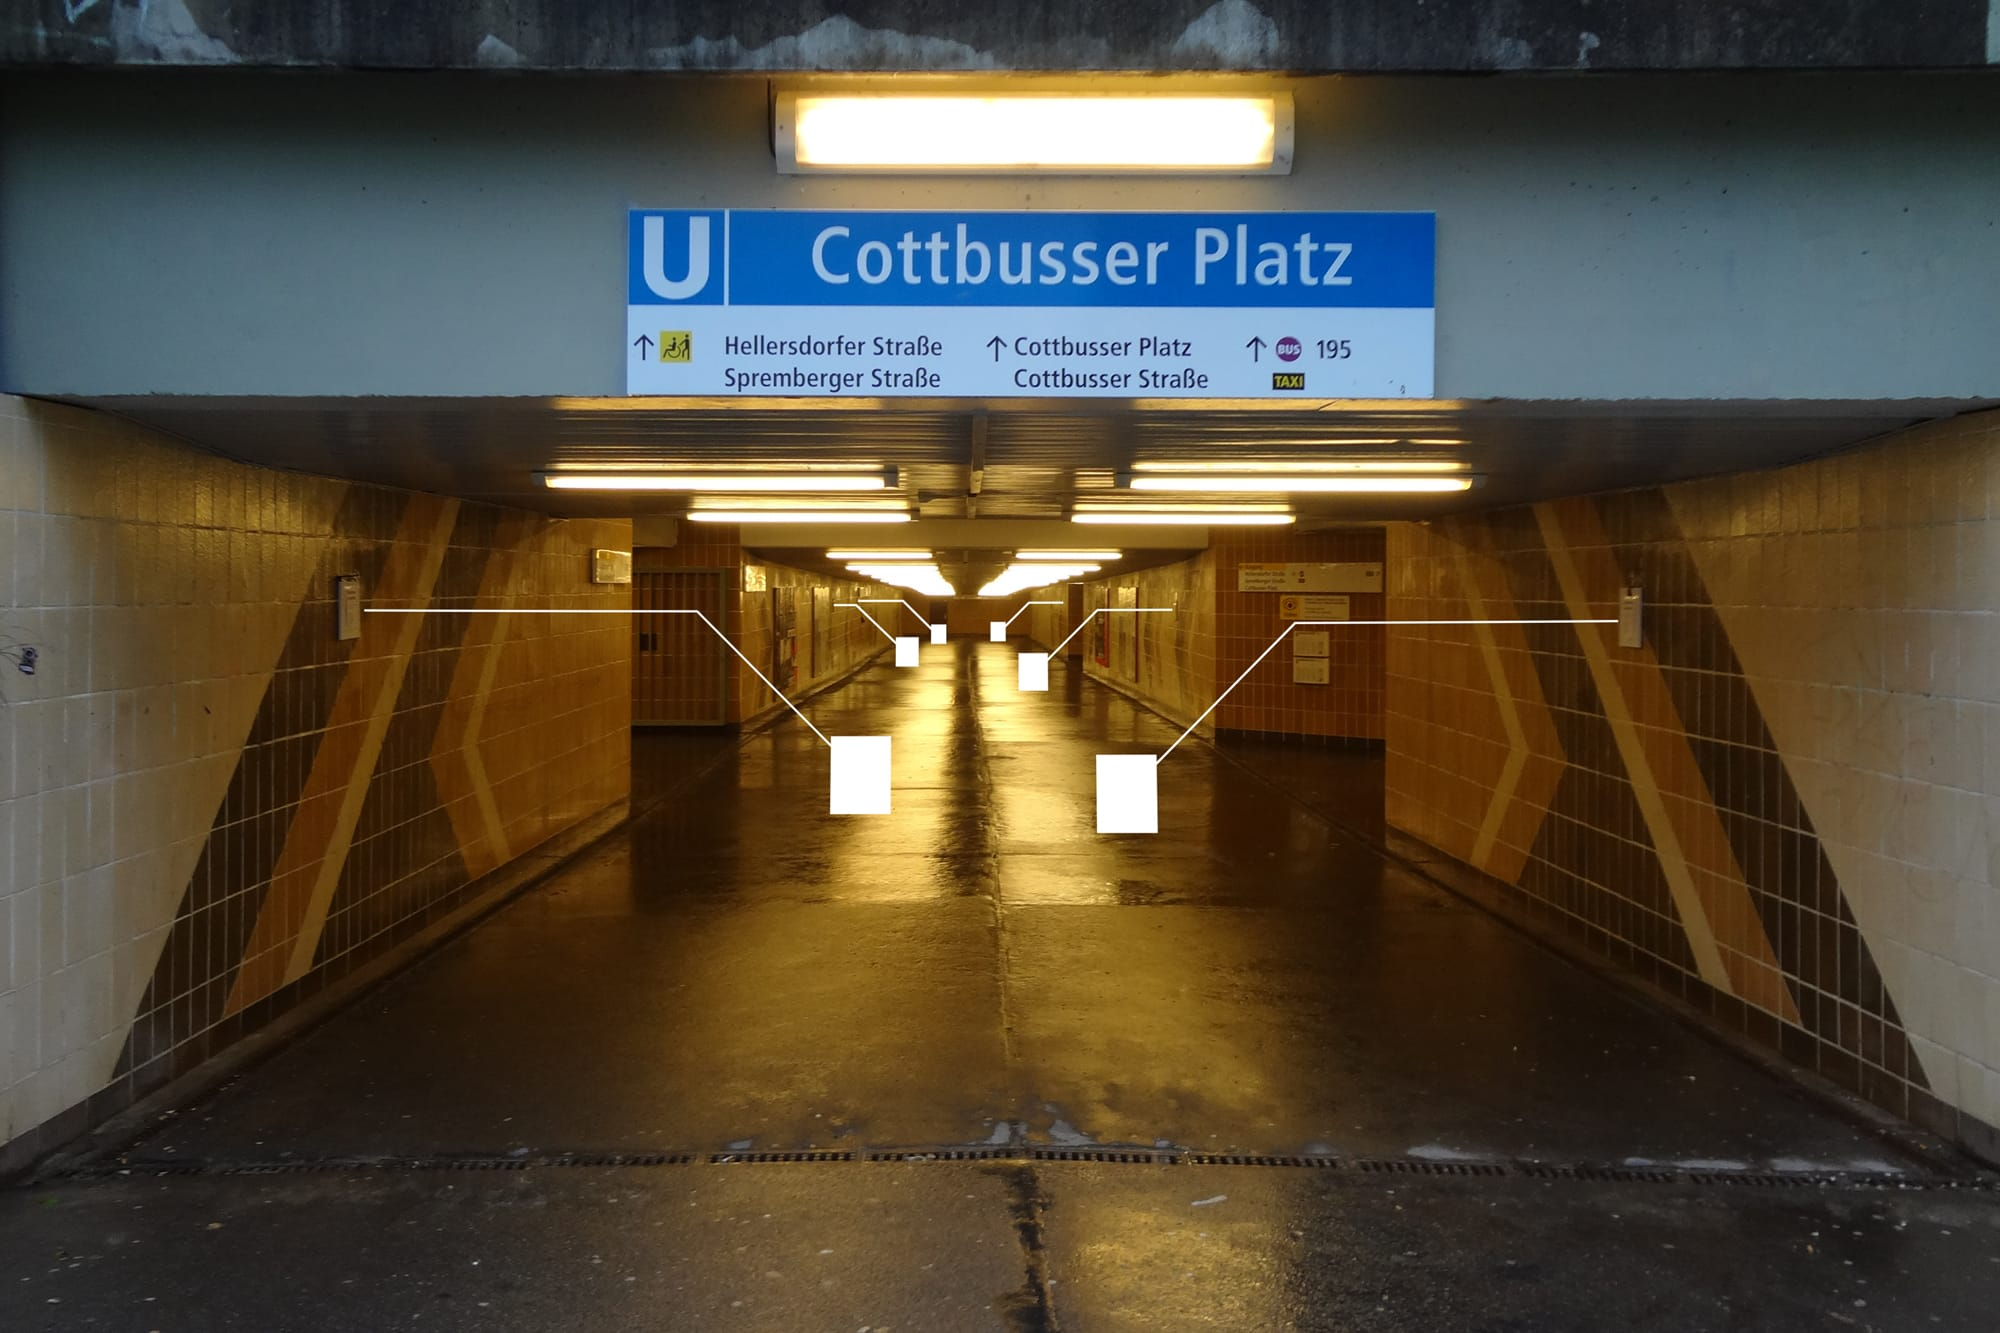 Tunnel at Cottbusser Platz